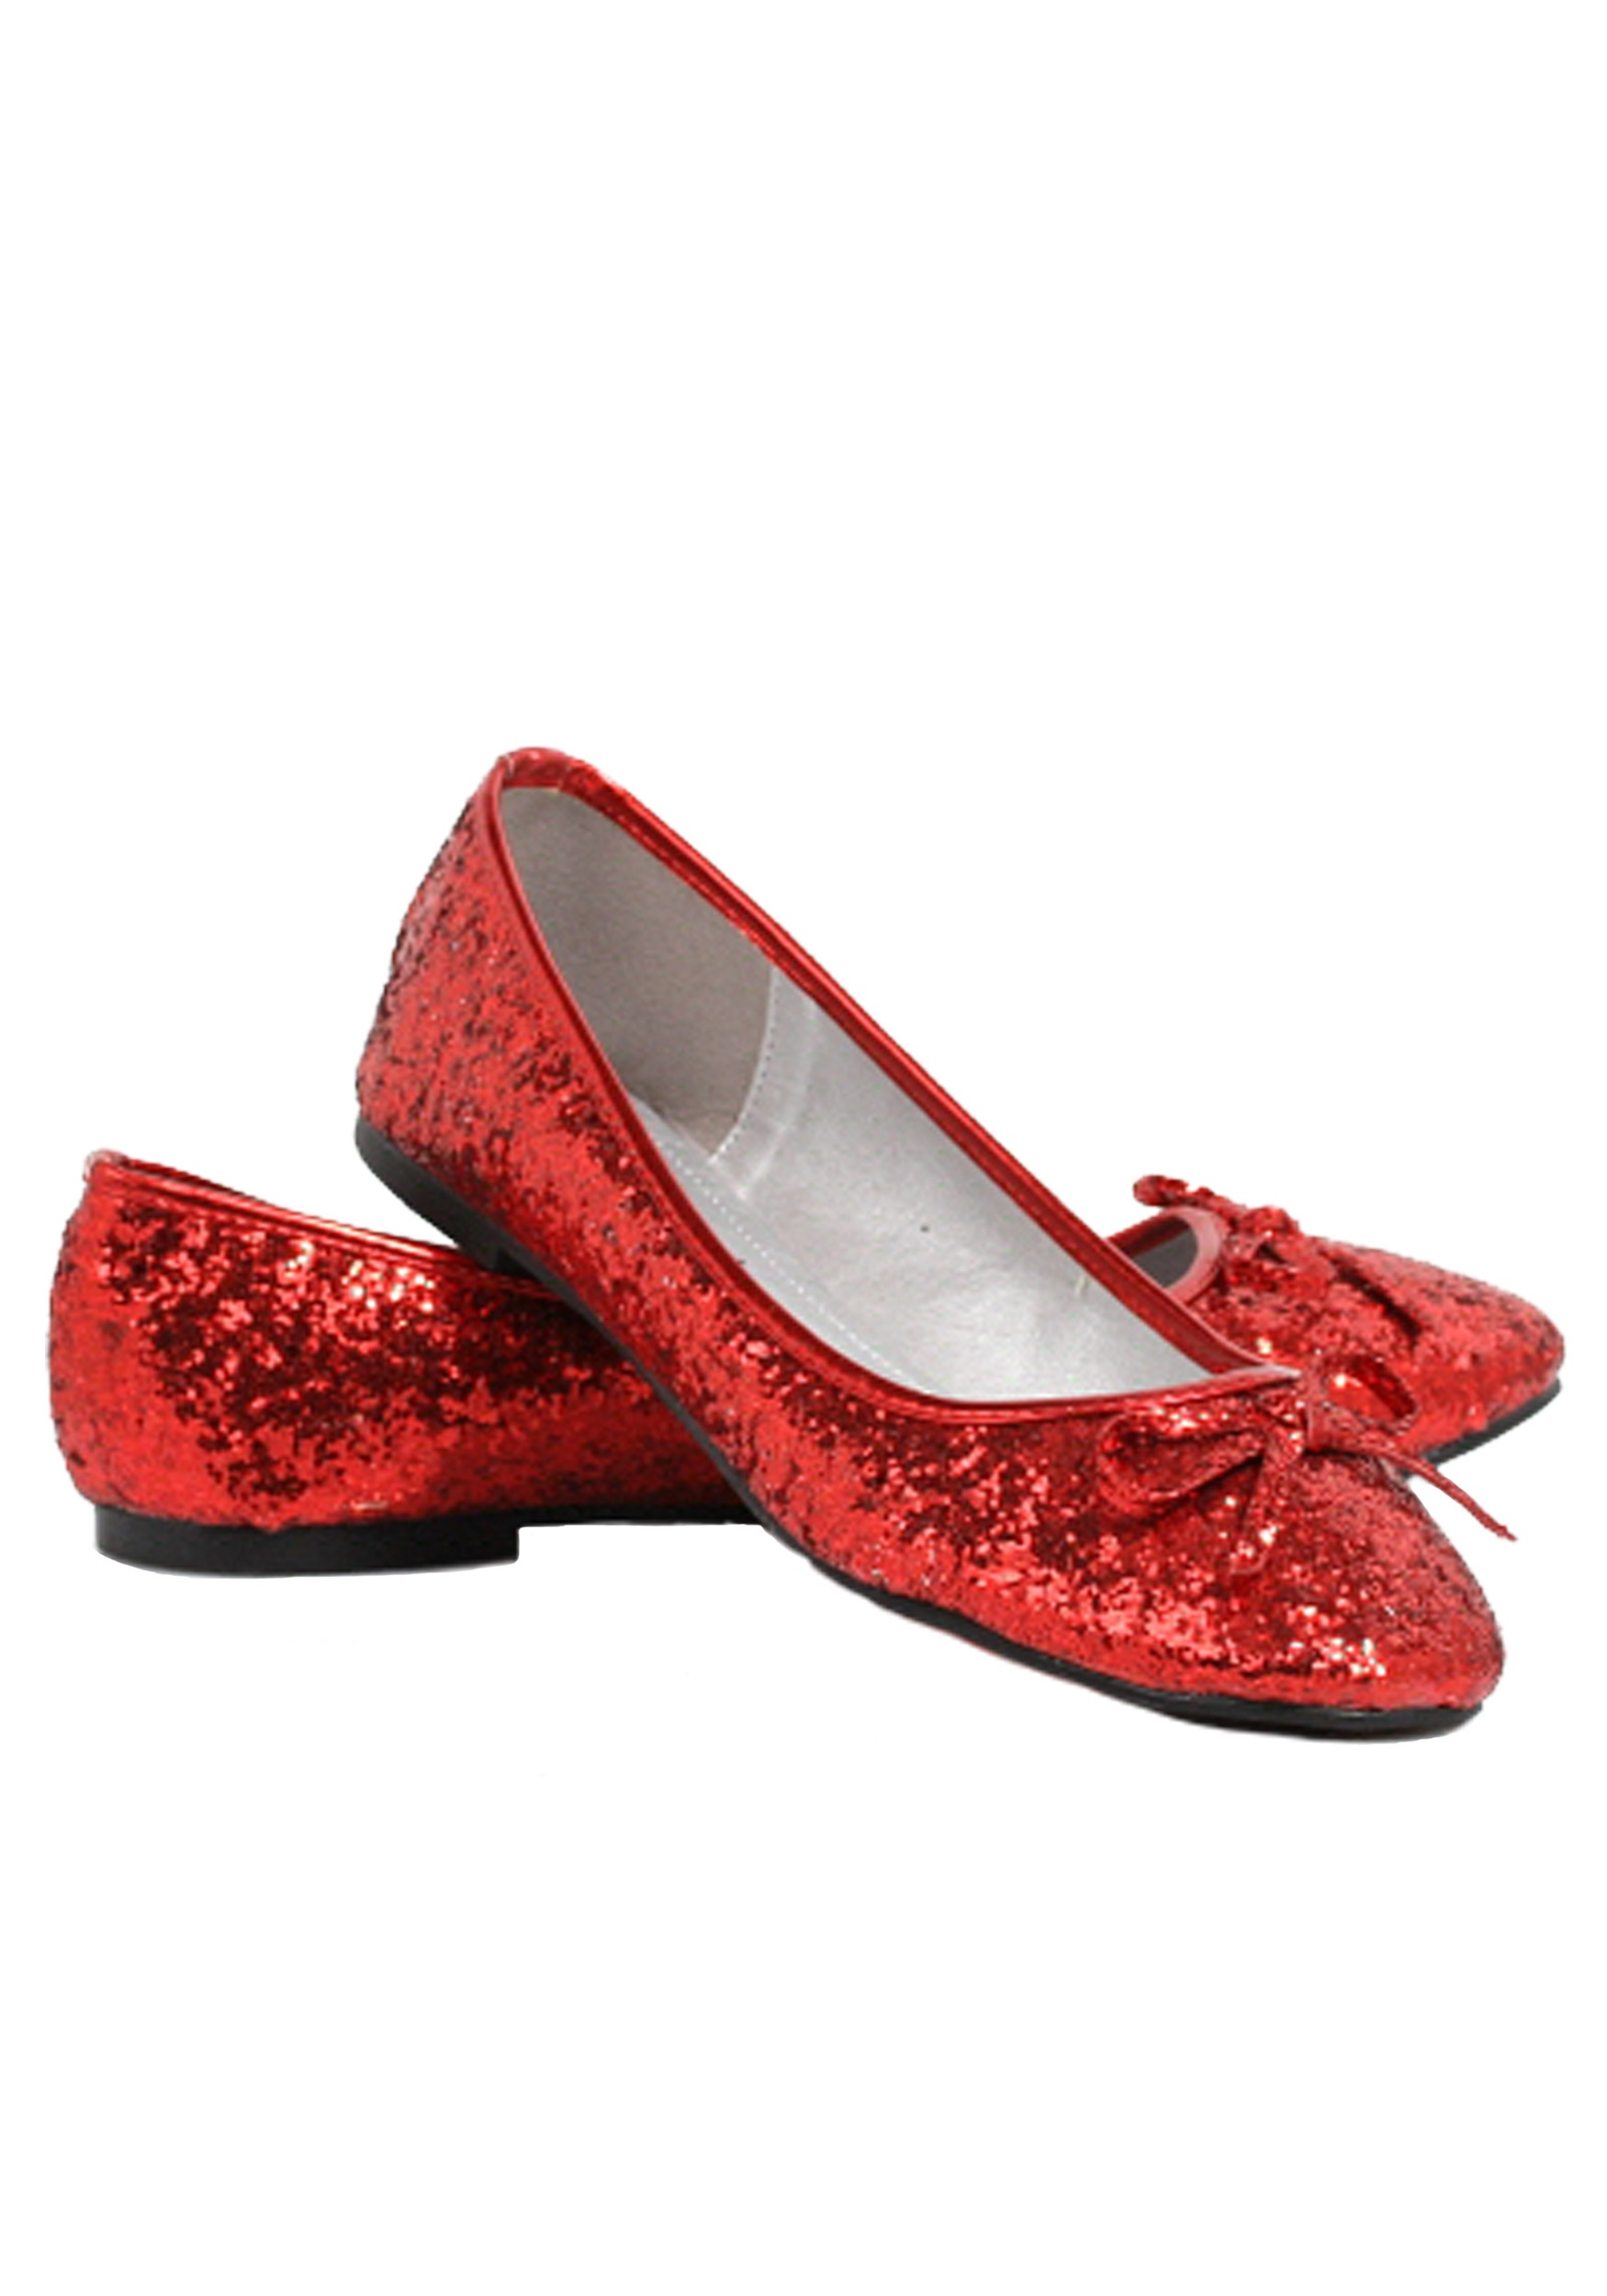 how to wear red flat shoes - photo #29